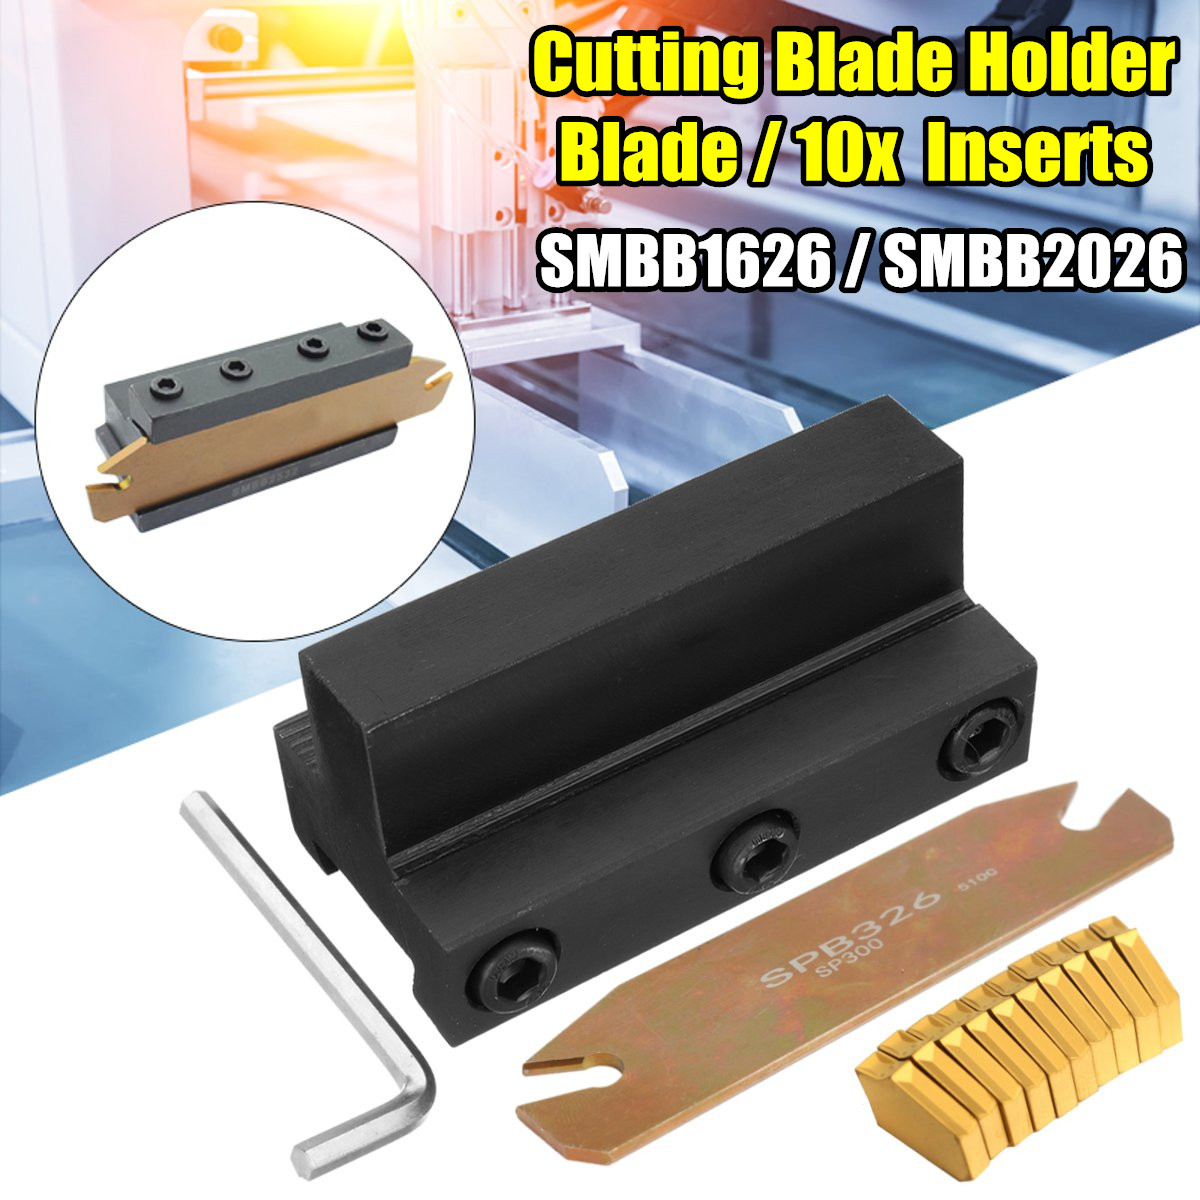 SMBB1626 / SMBB2026 SPB26 -3 Cutting Blade Holder+Cut-Off Cutter Blade Inserts For GTN-3